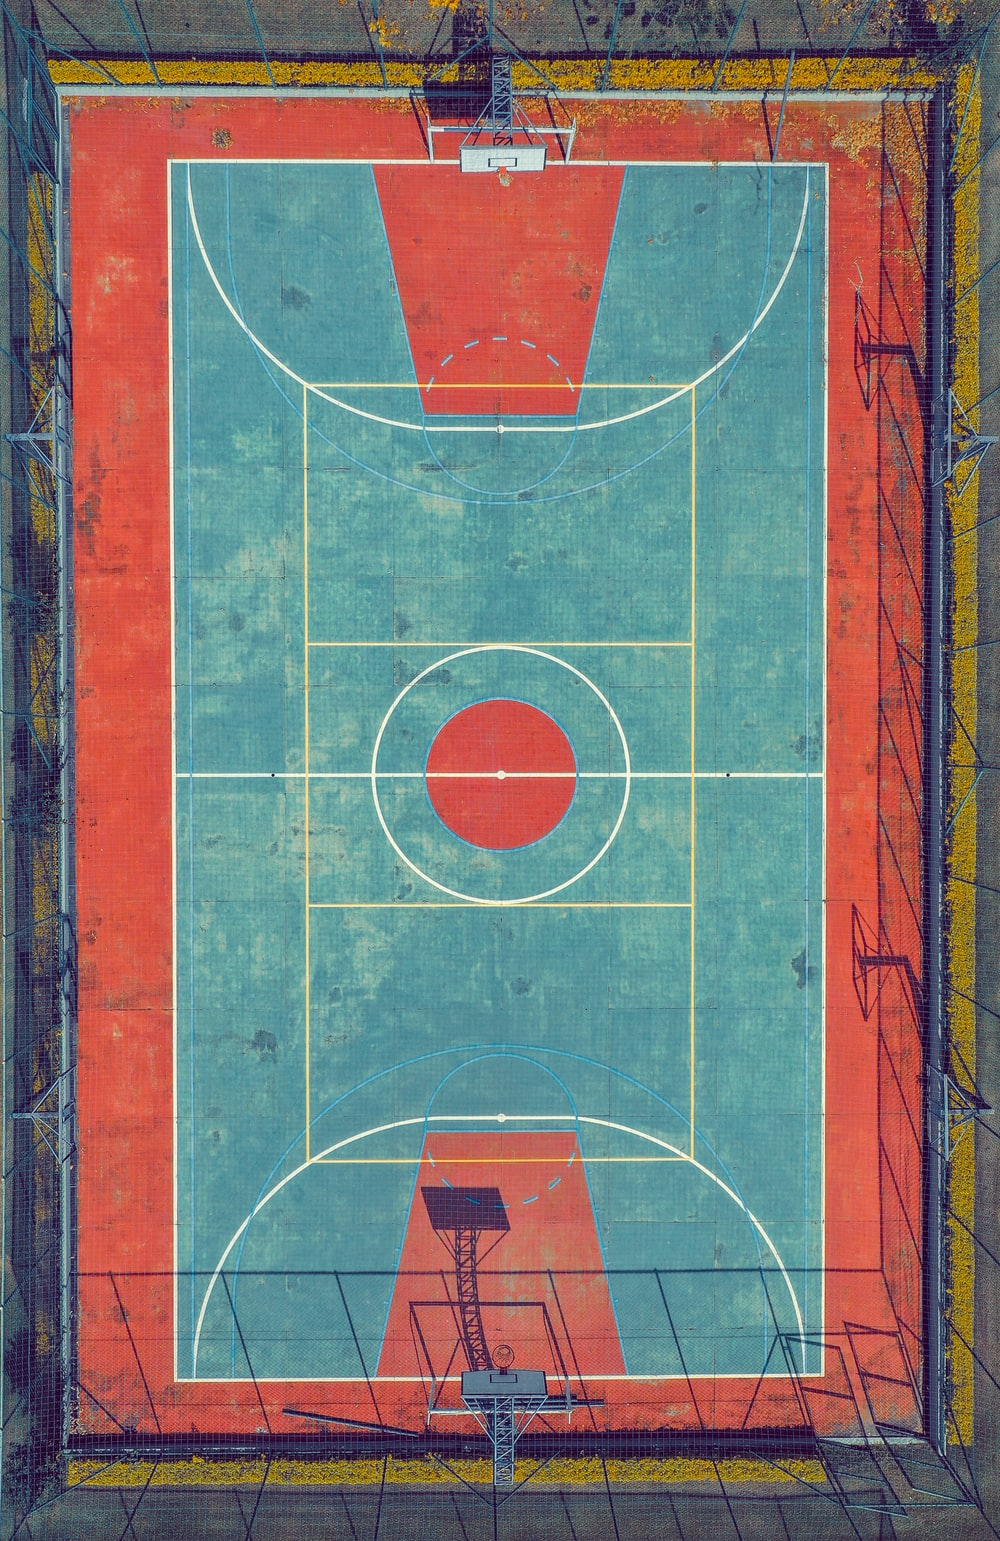 aerial photo of multicolored basketball court